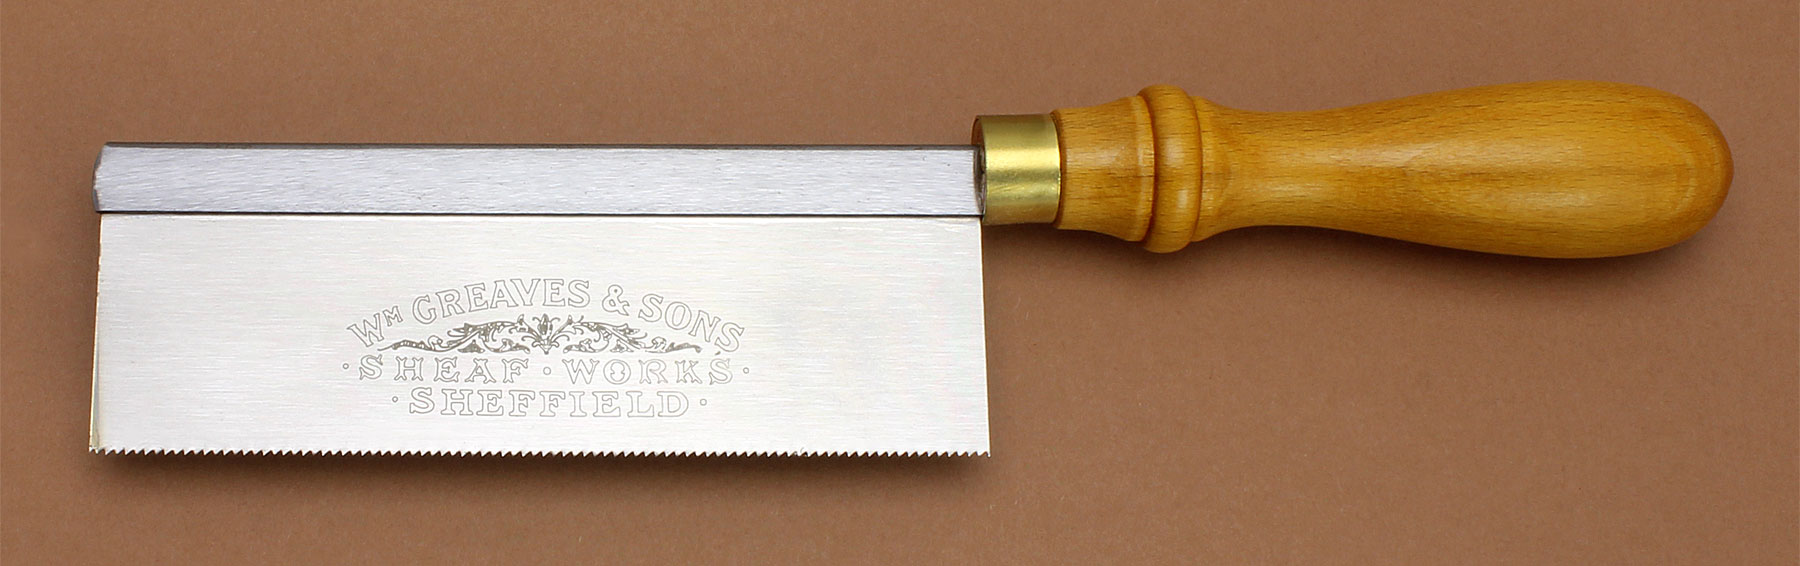 pax gents saws, william greaves gents saws | fine tools